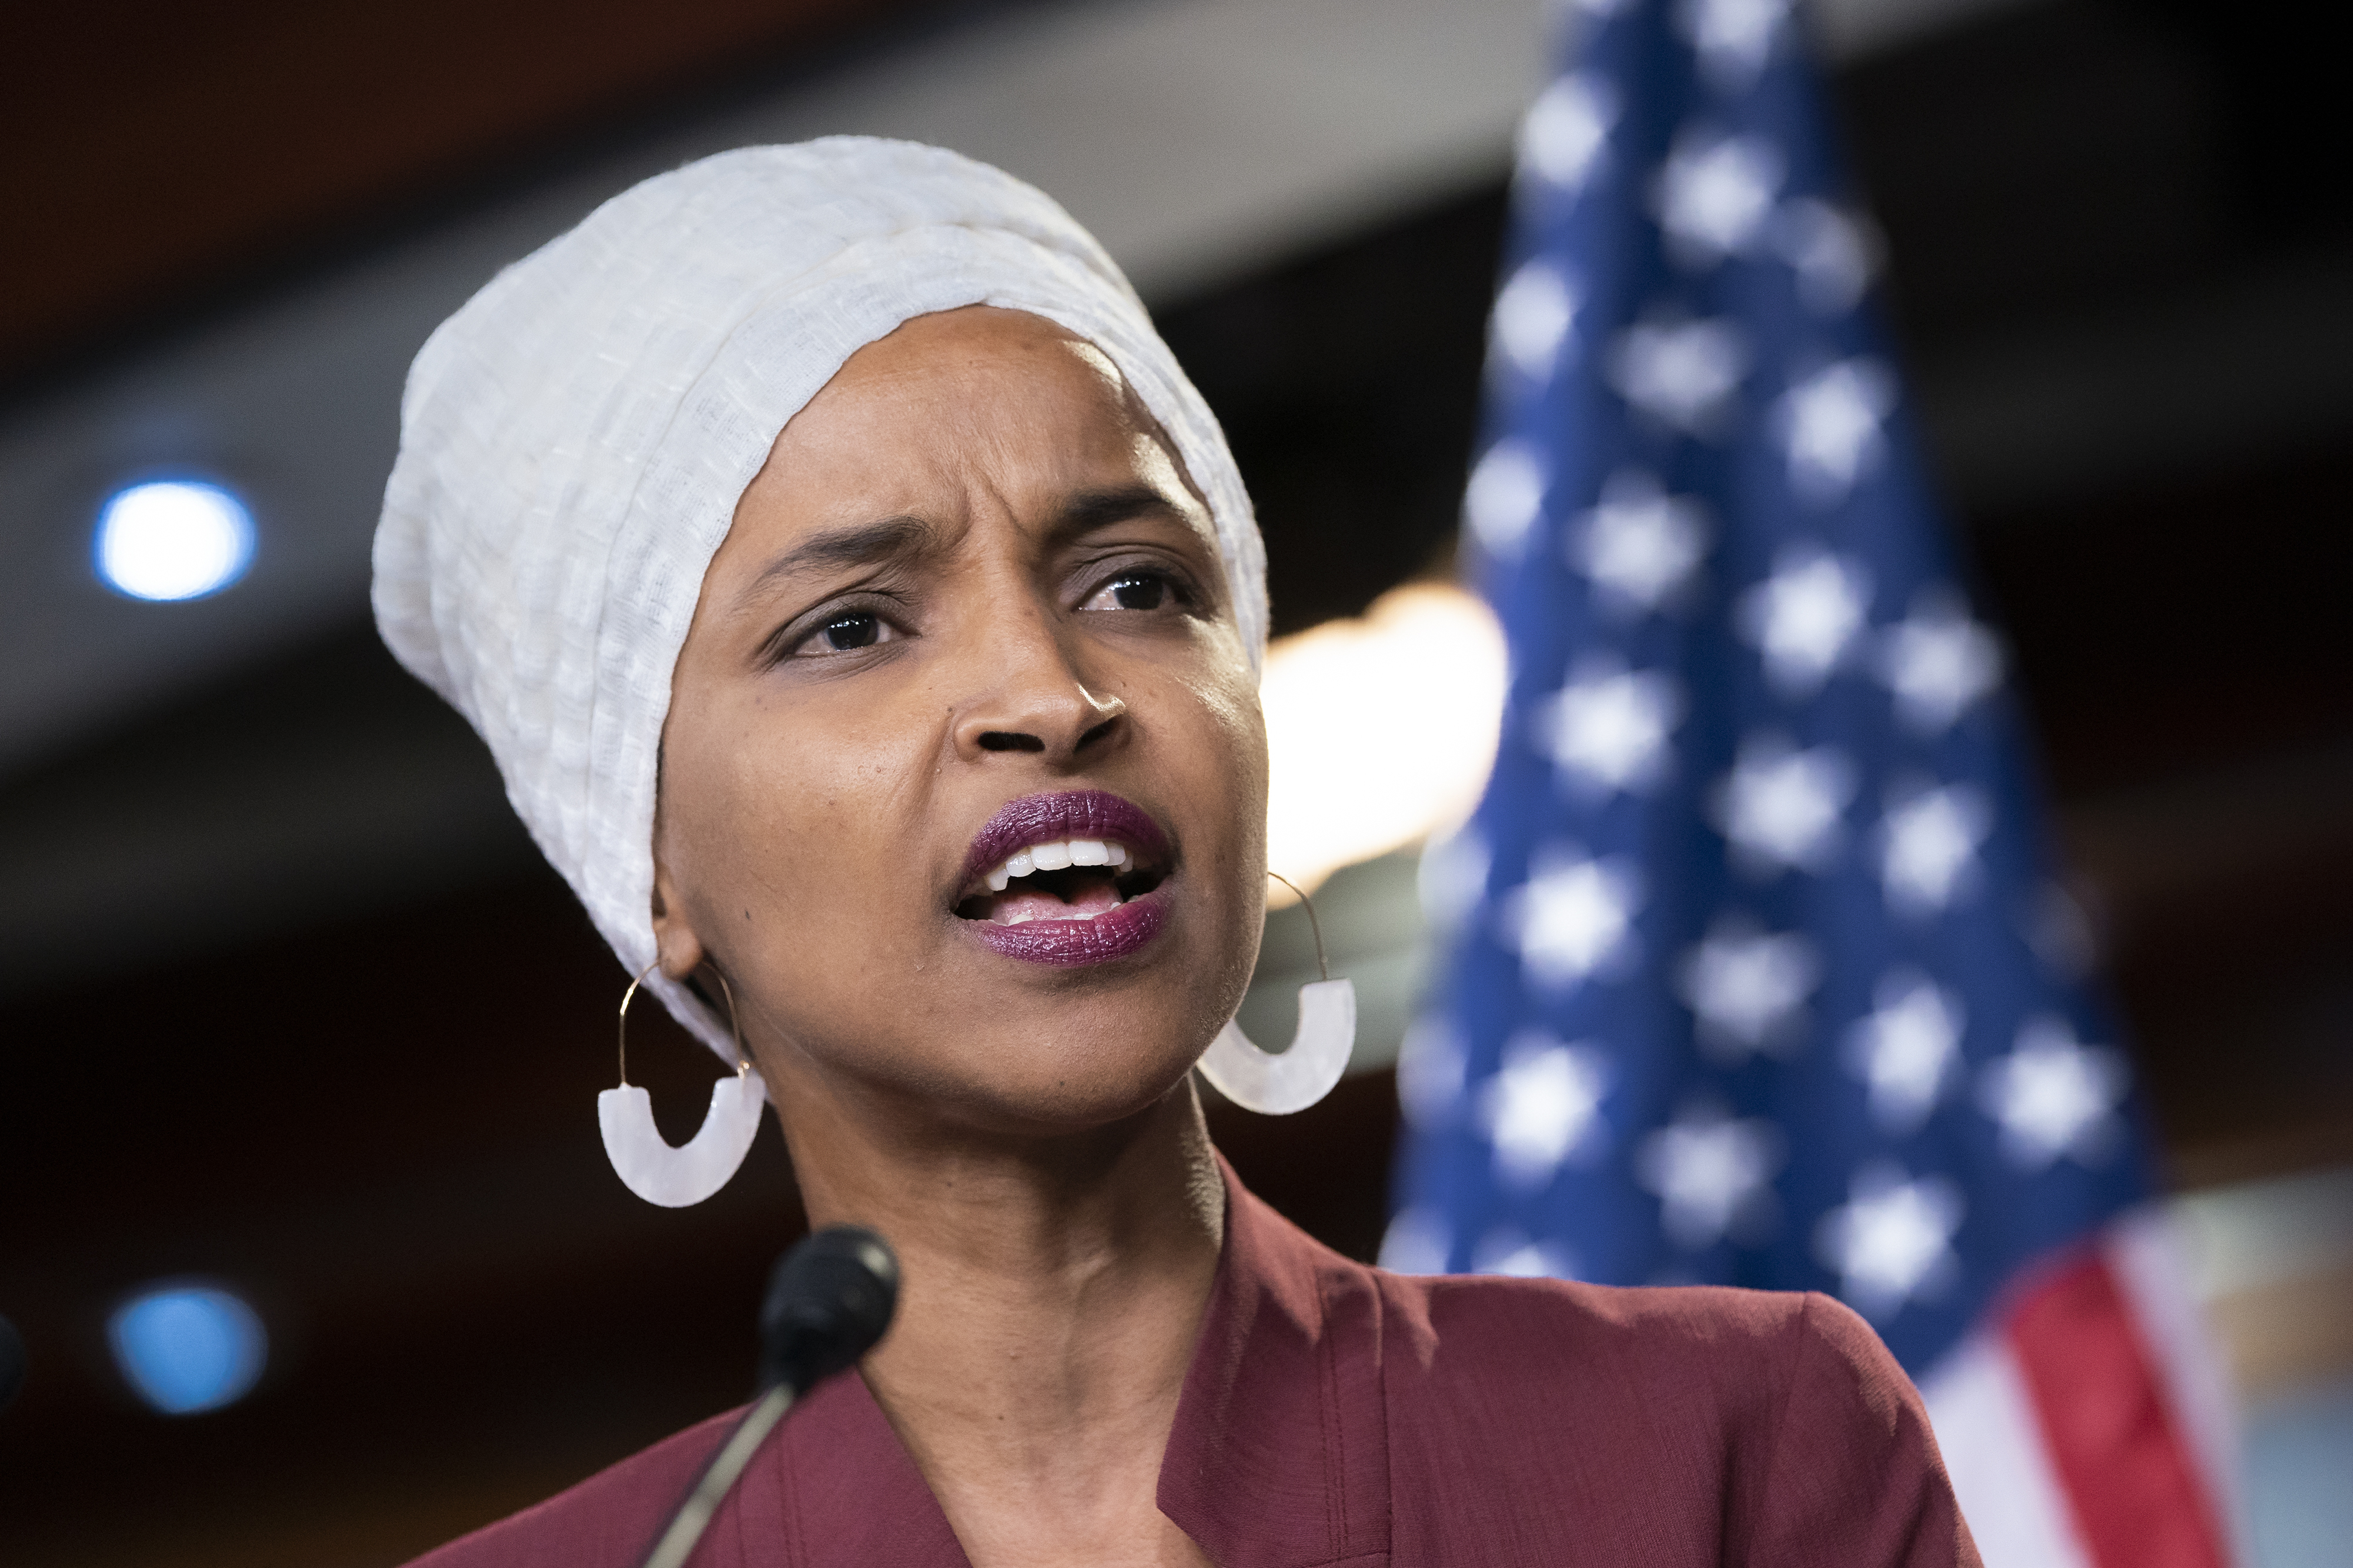 Ilhan Omar: Israel aid should be conditional on treatment of Palestinians